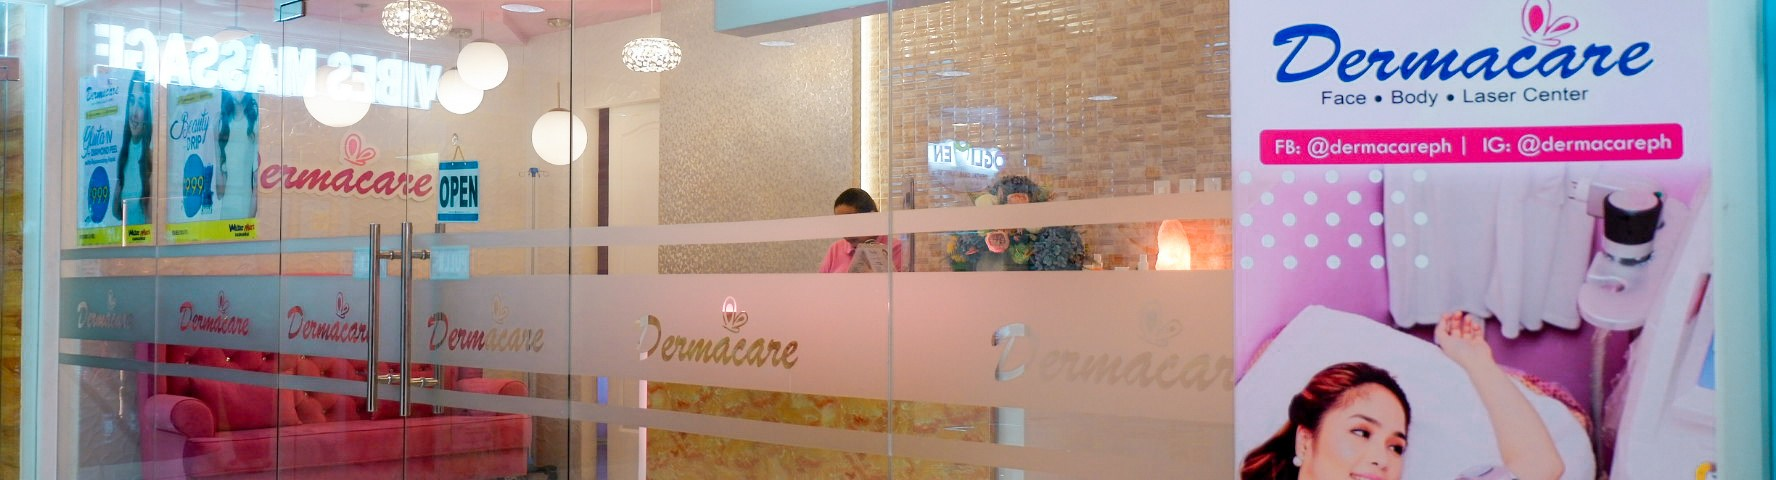 How to get DISCOUNTS from Dermacare (3)